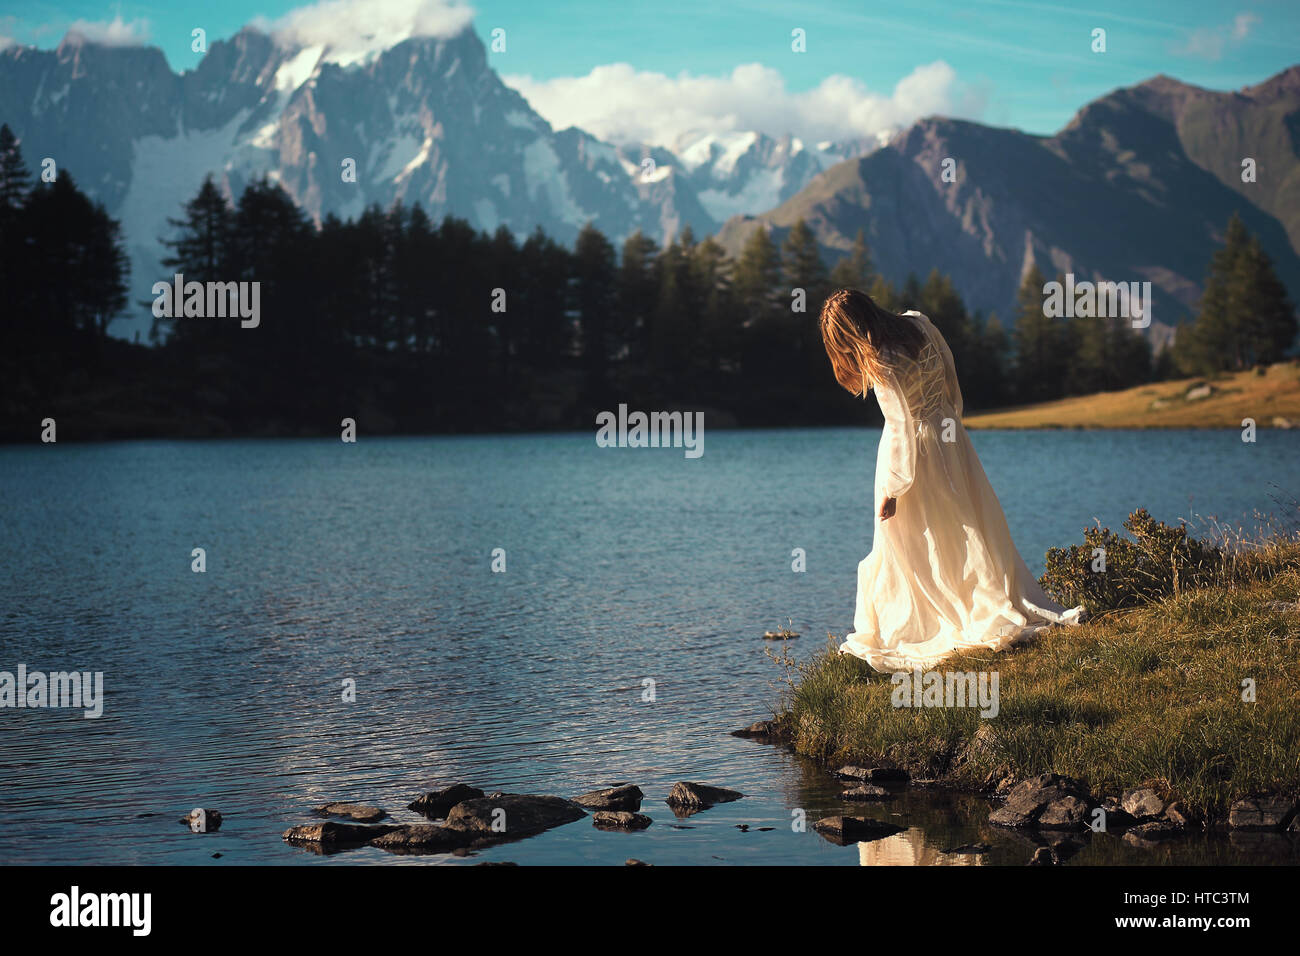 Woman posing in mountain lake at sunset. Romantic and dreamy - Stock Image